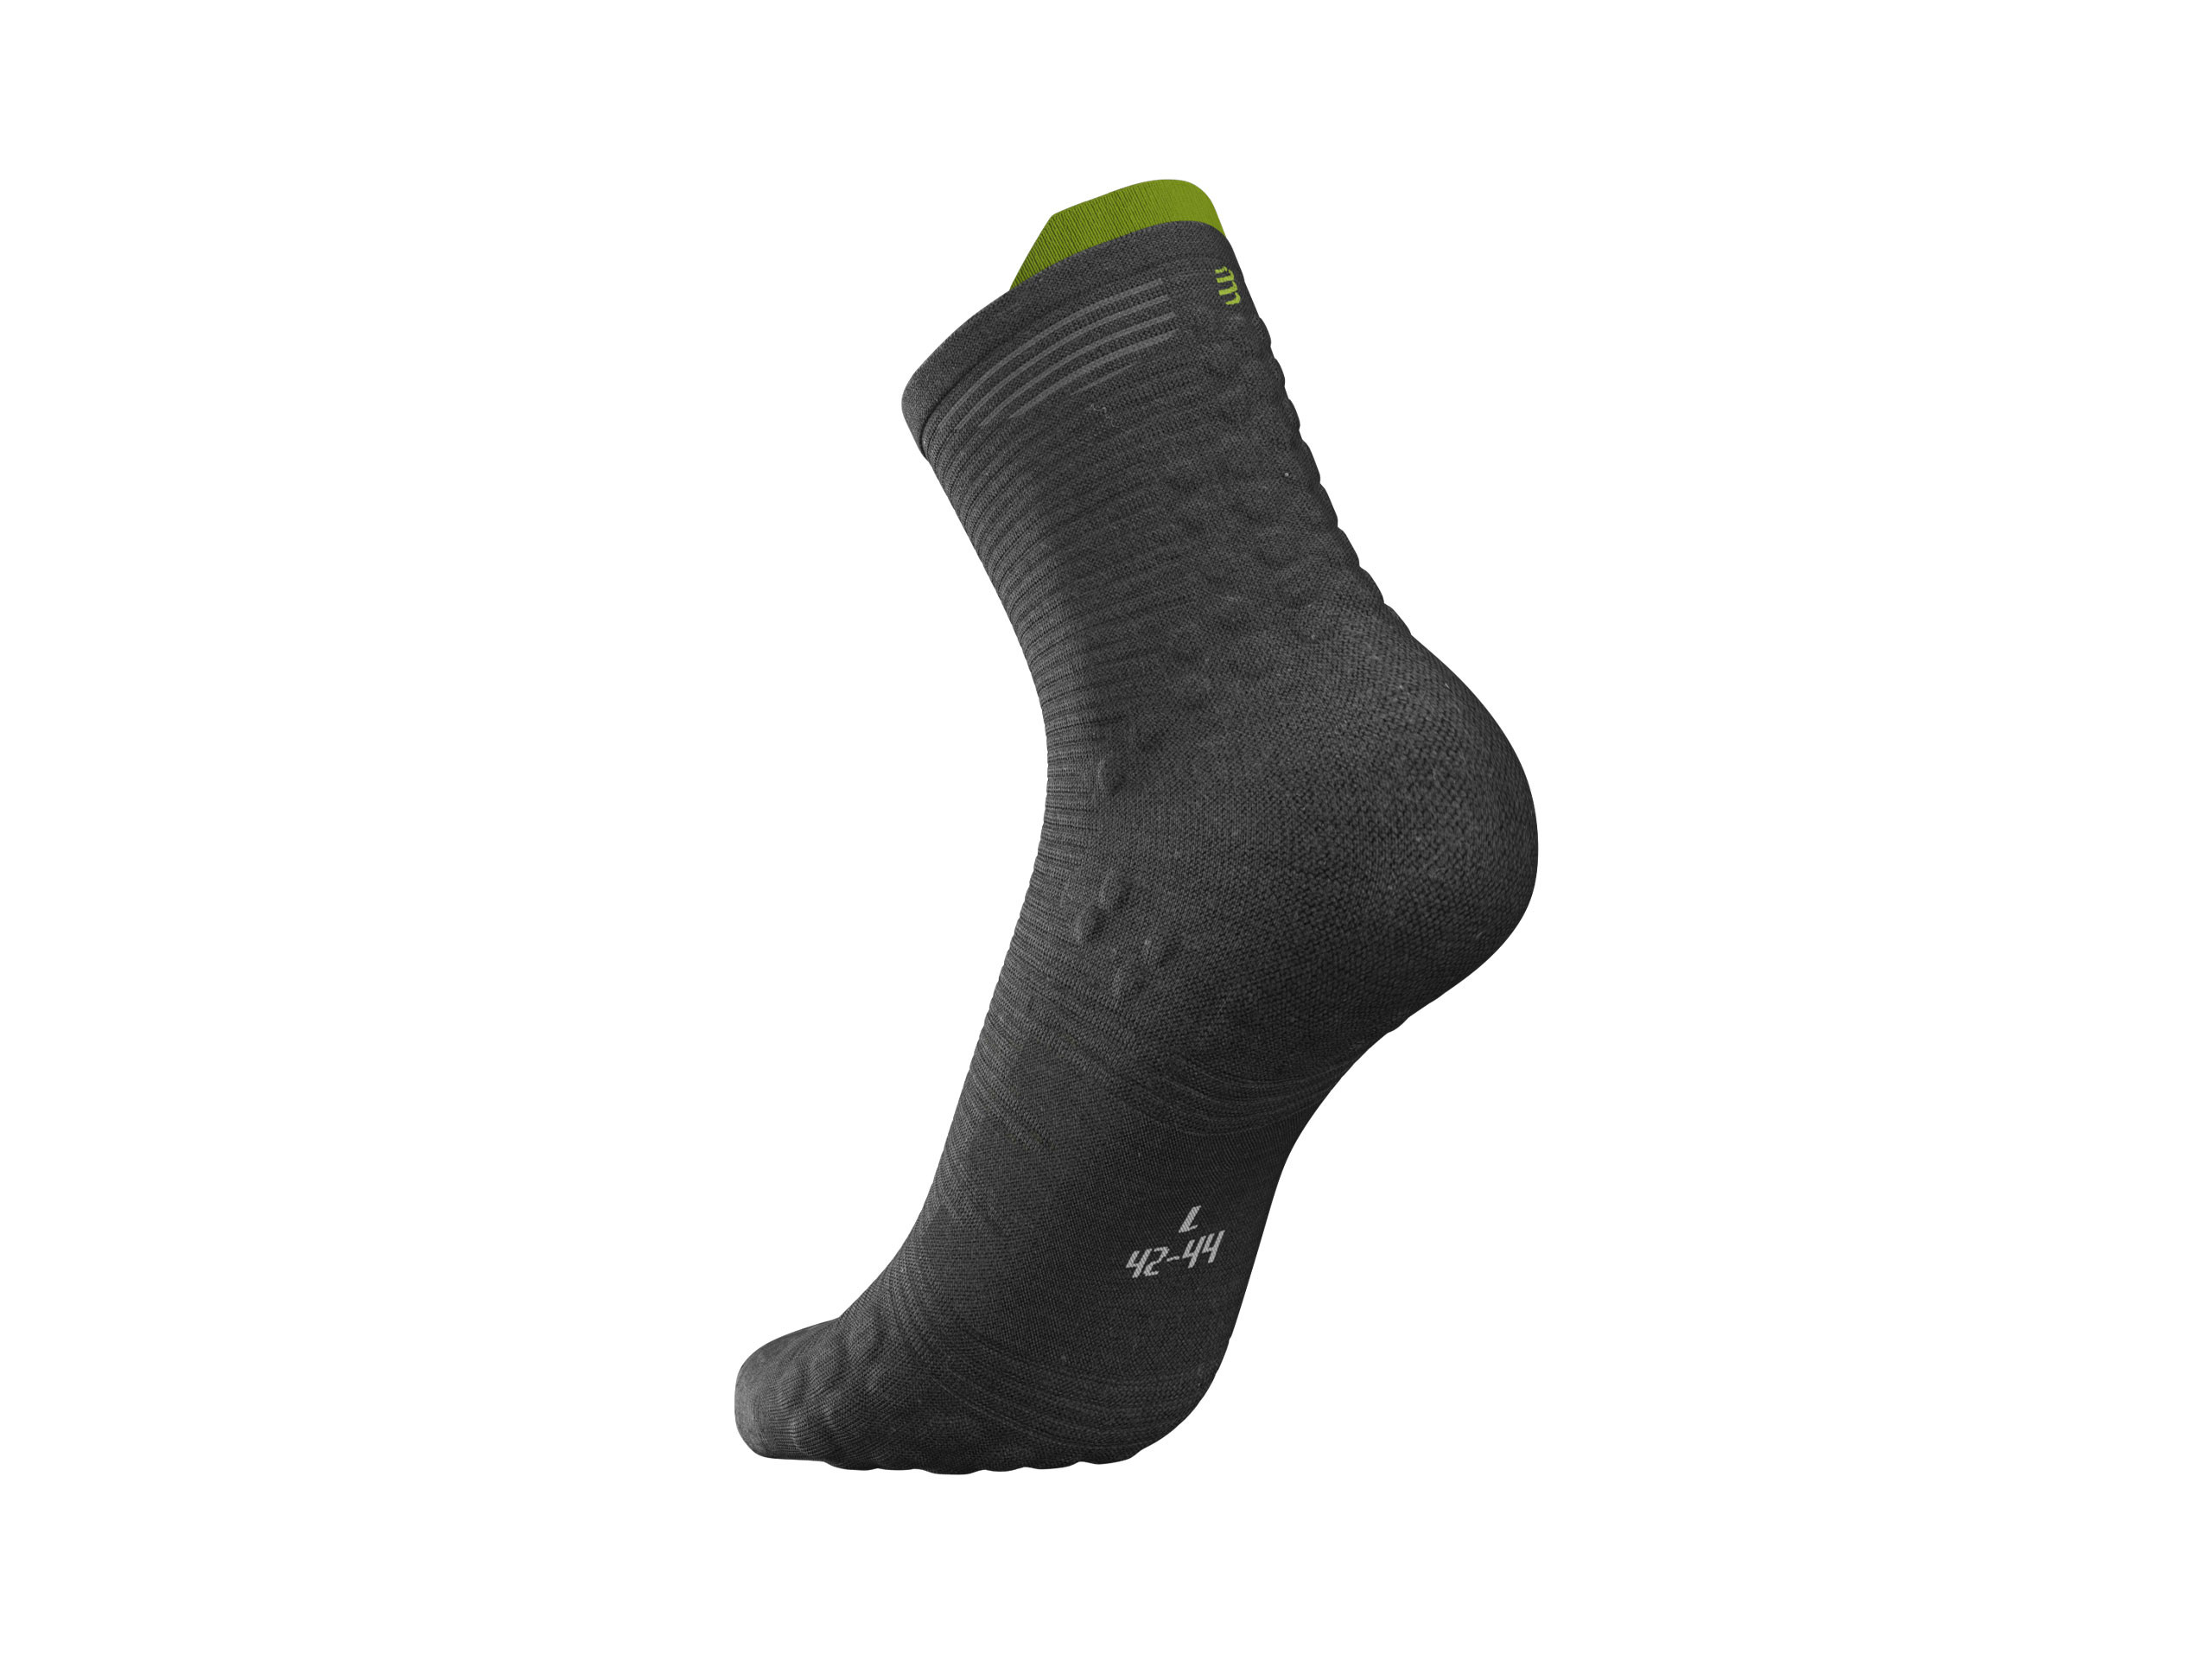 Calcetines deportivos pro v3.0 Run High - Black Edition 2019